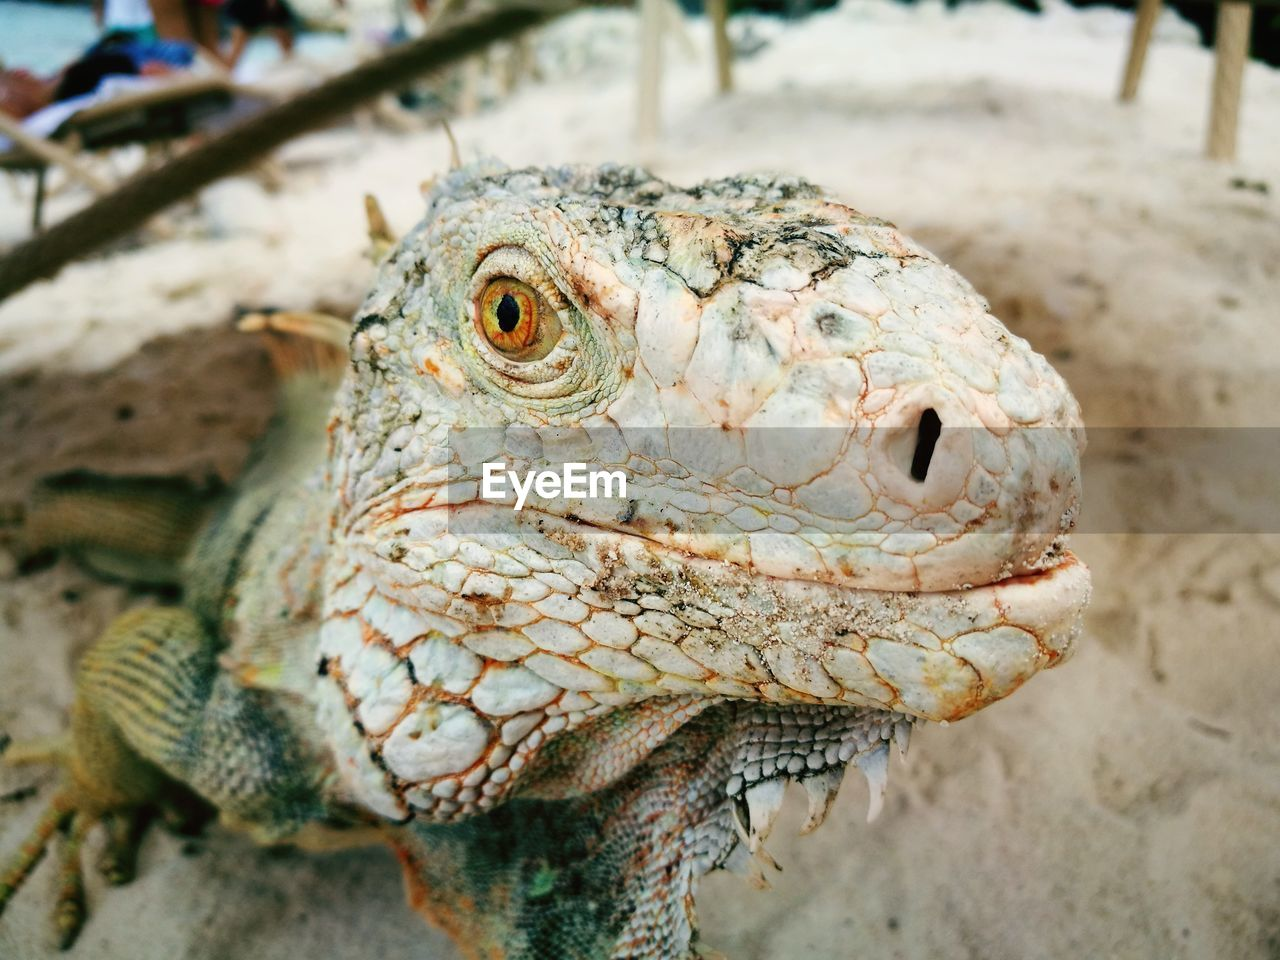 animal, vertebrate, animal themes, one animal, reptile, close-up, focus on foreground, lizard, animal wildlife, animals in the wild, day, animal body part, no people, animal head, nature, iguana, outdoors, natural pattern, side view, animal scale, animal eye